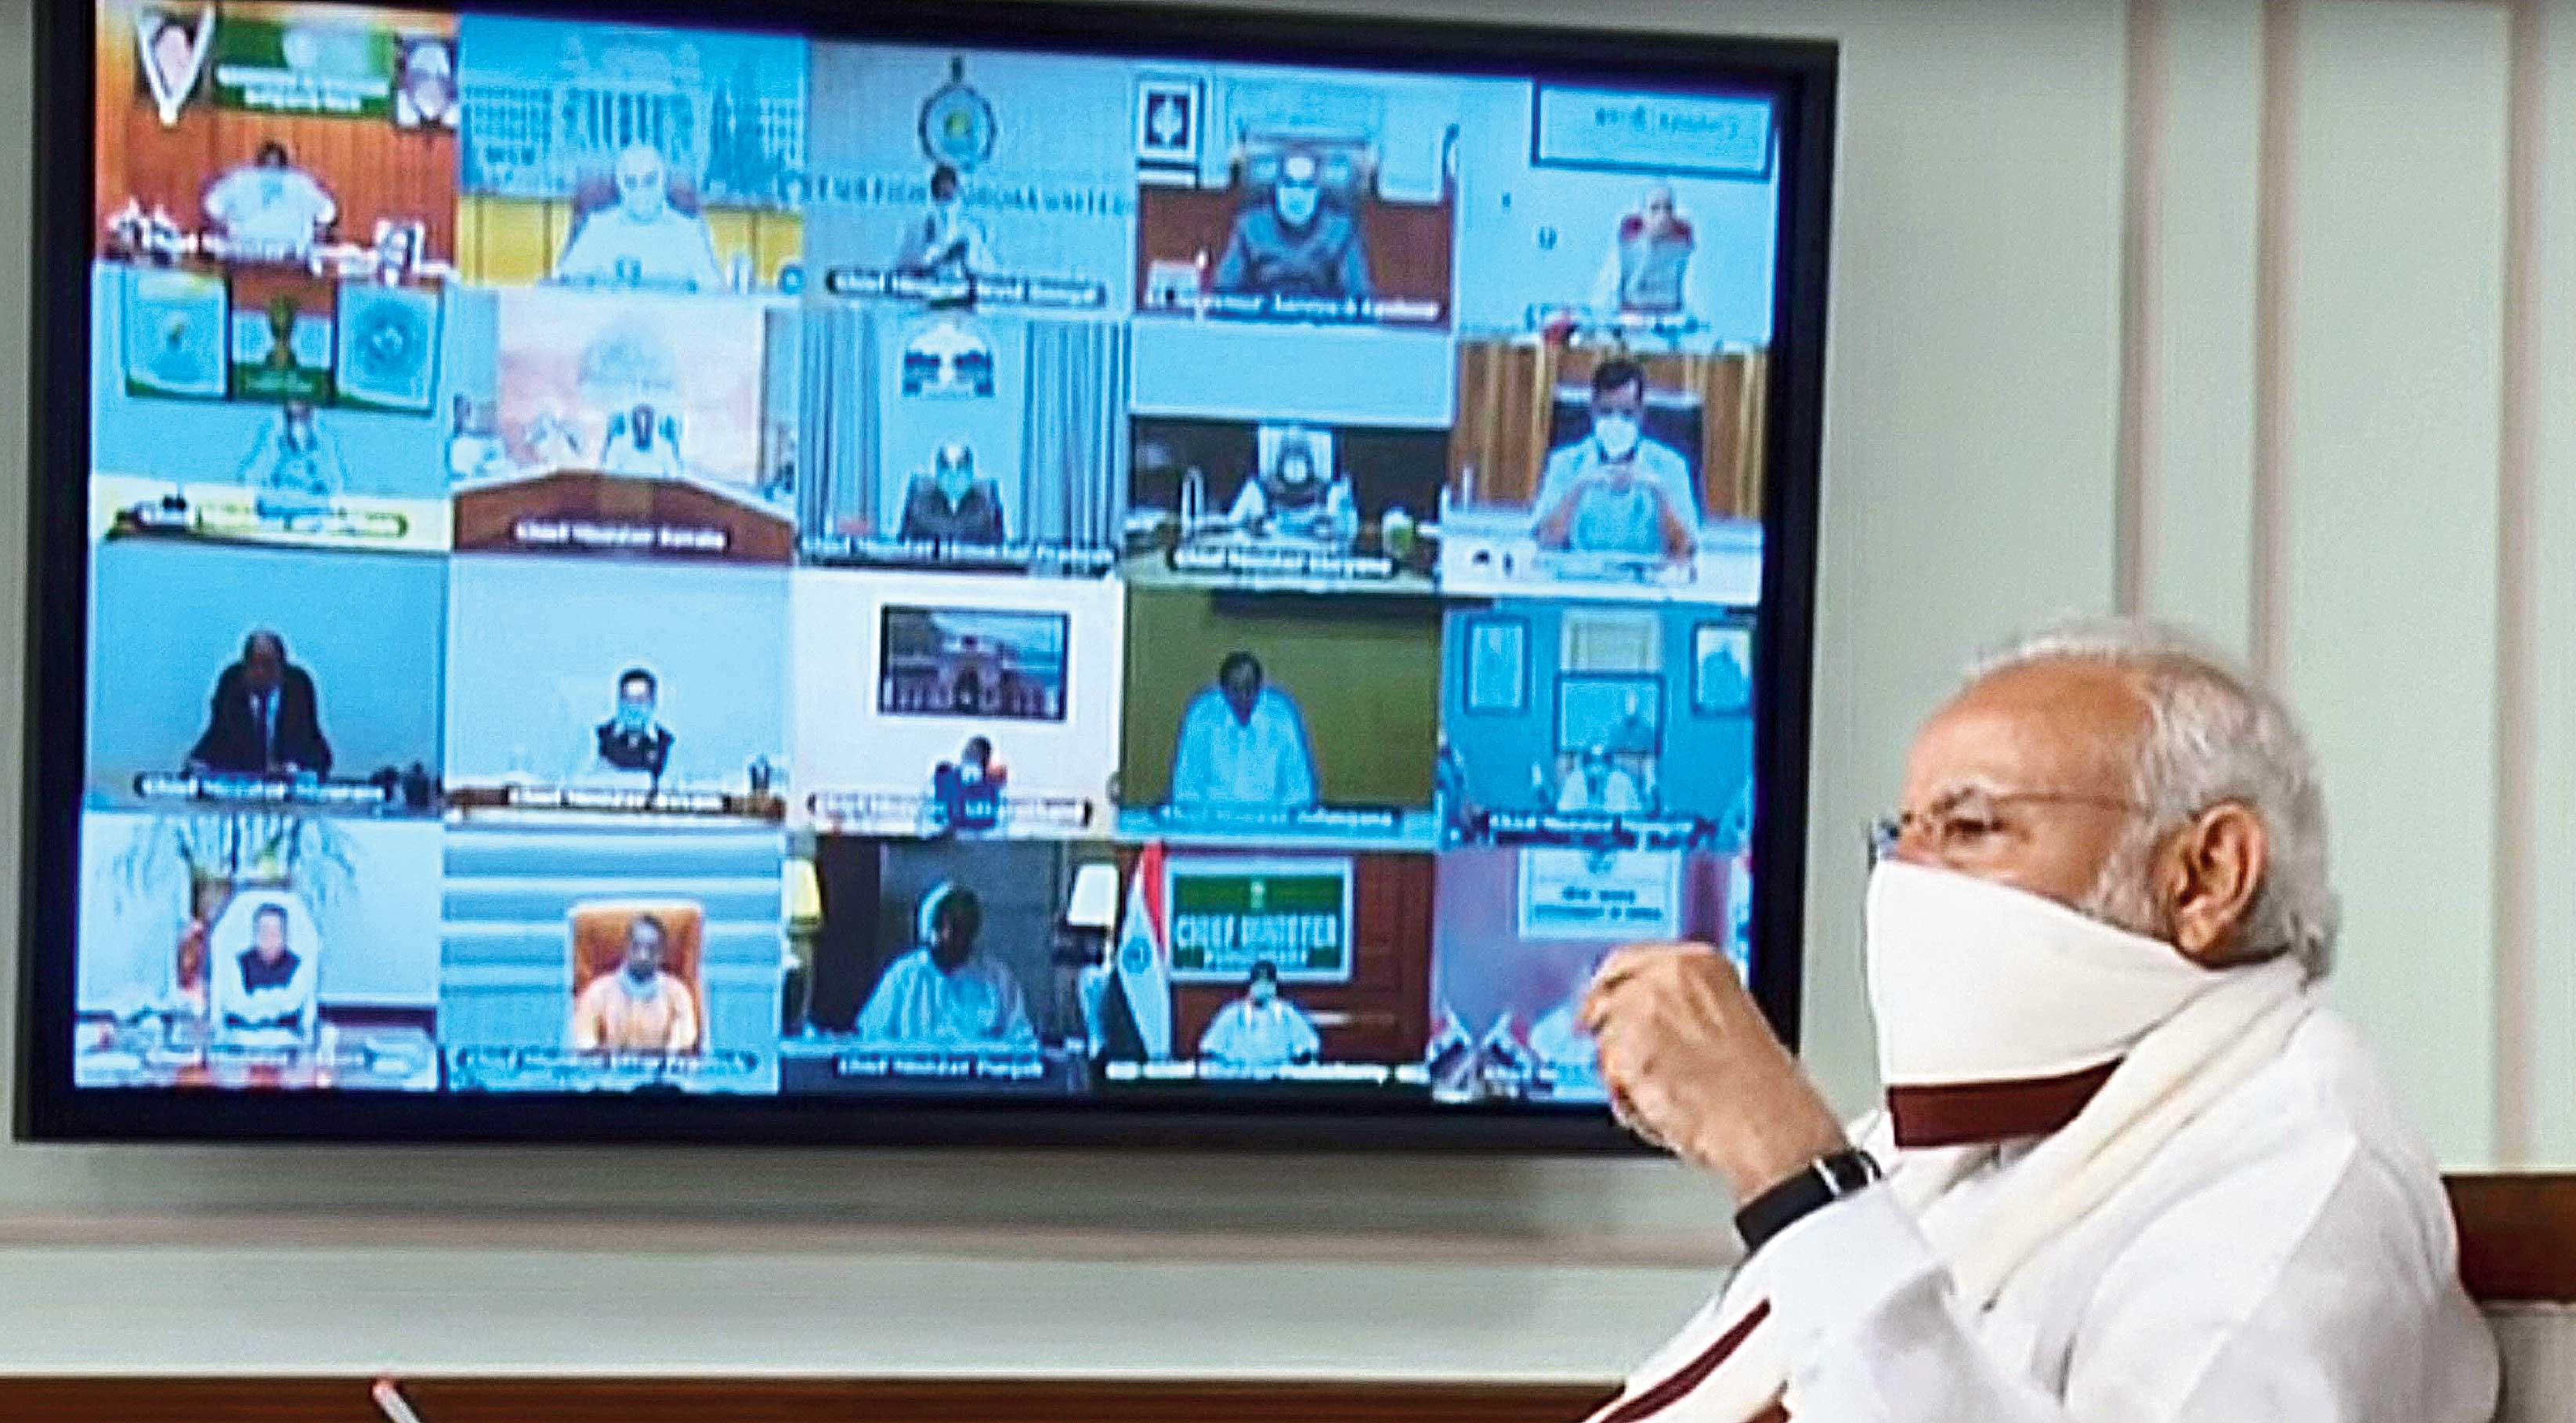 Prime Minister Narendra Modi wearing a protective mask chairs a meeting with chief ministers on the Covid-19 lockdown via videoconference in New Delhi on Saturday.